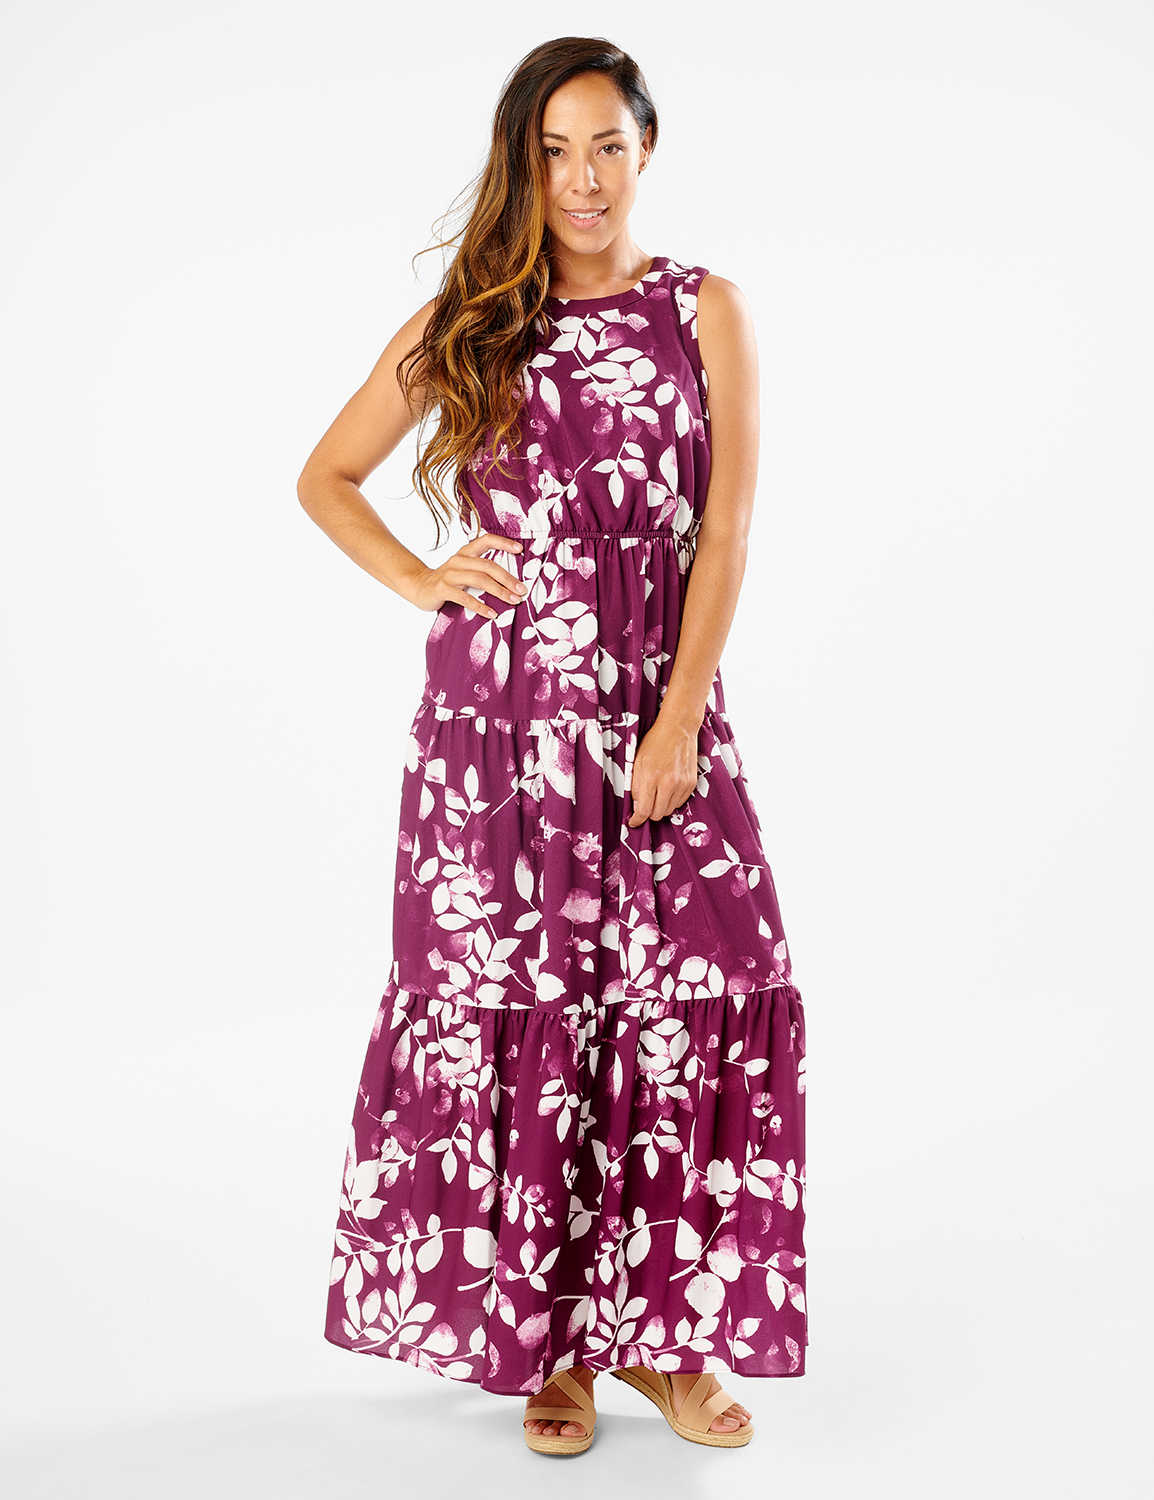 Leaf Print Tiered Maxi Dress -Pickled Beet/Ivory - Front